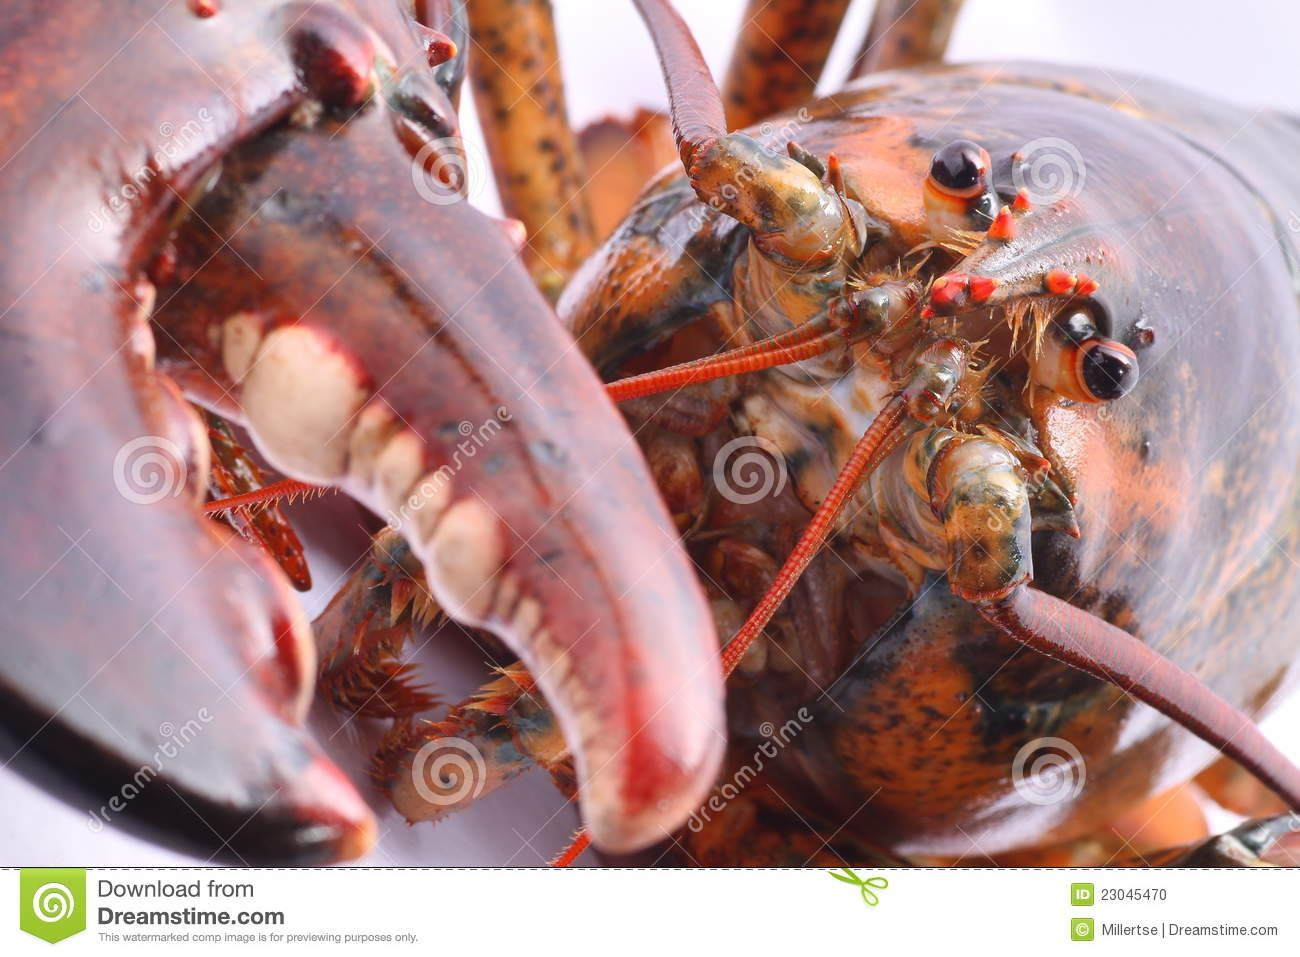 lobster head close up | close up on the head of a jumbo living American lobster with claws.